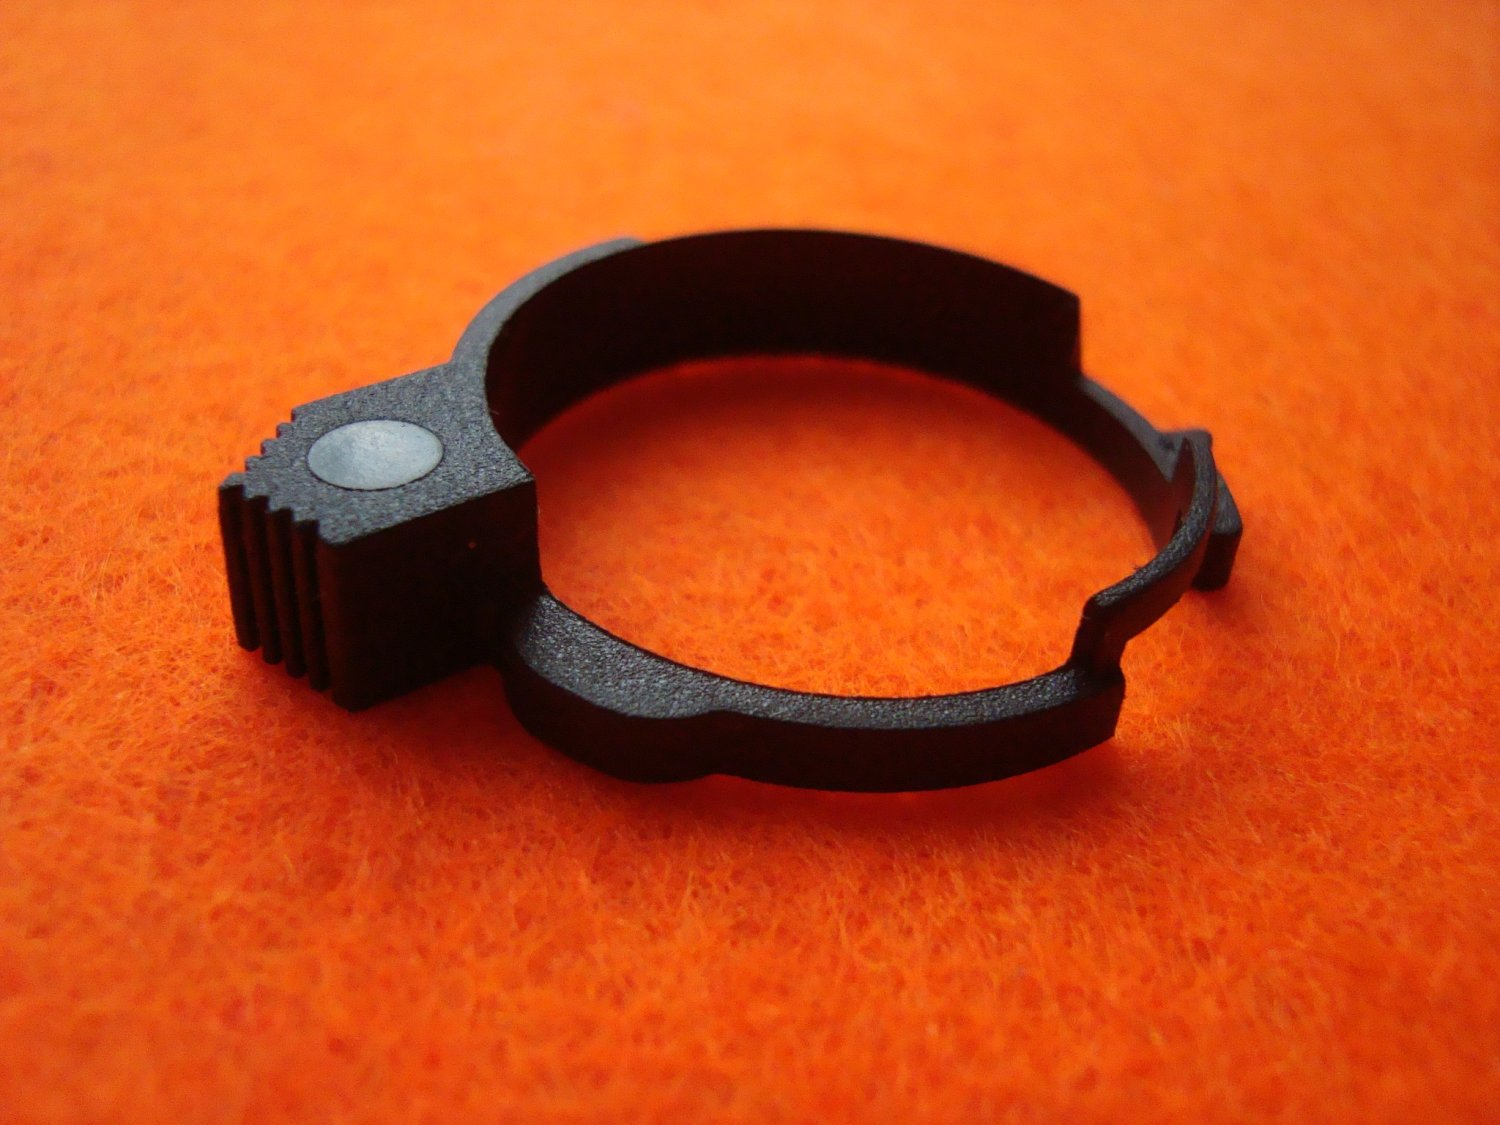 Fuse ring mp-61, mp-60, izh-61, izh-60 functional part for safer use, upgraded detail made to order.